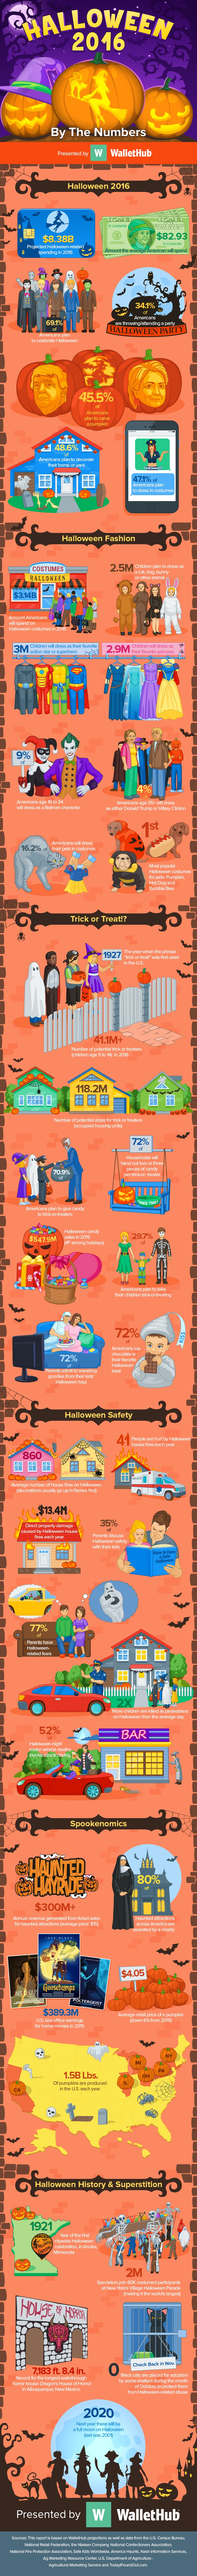 Halloween-2016-By-The-Numbers-workv5